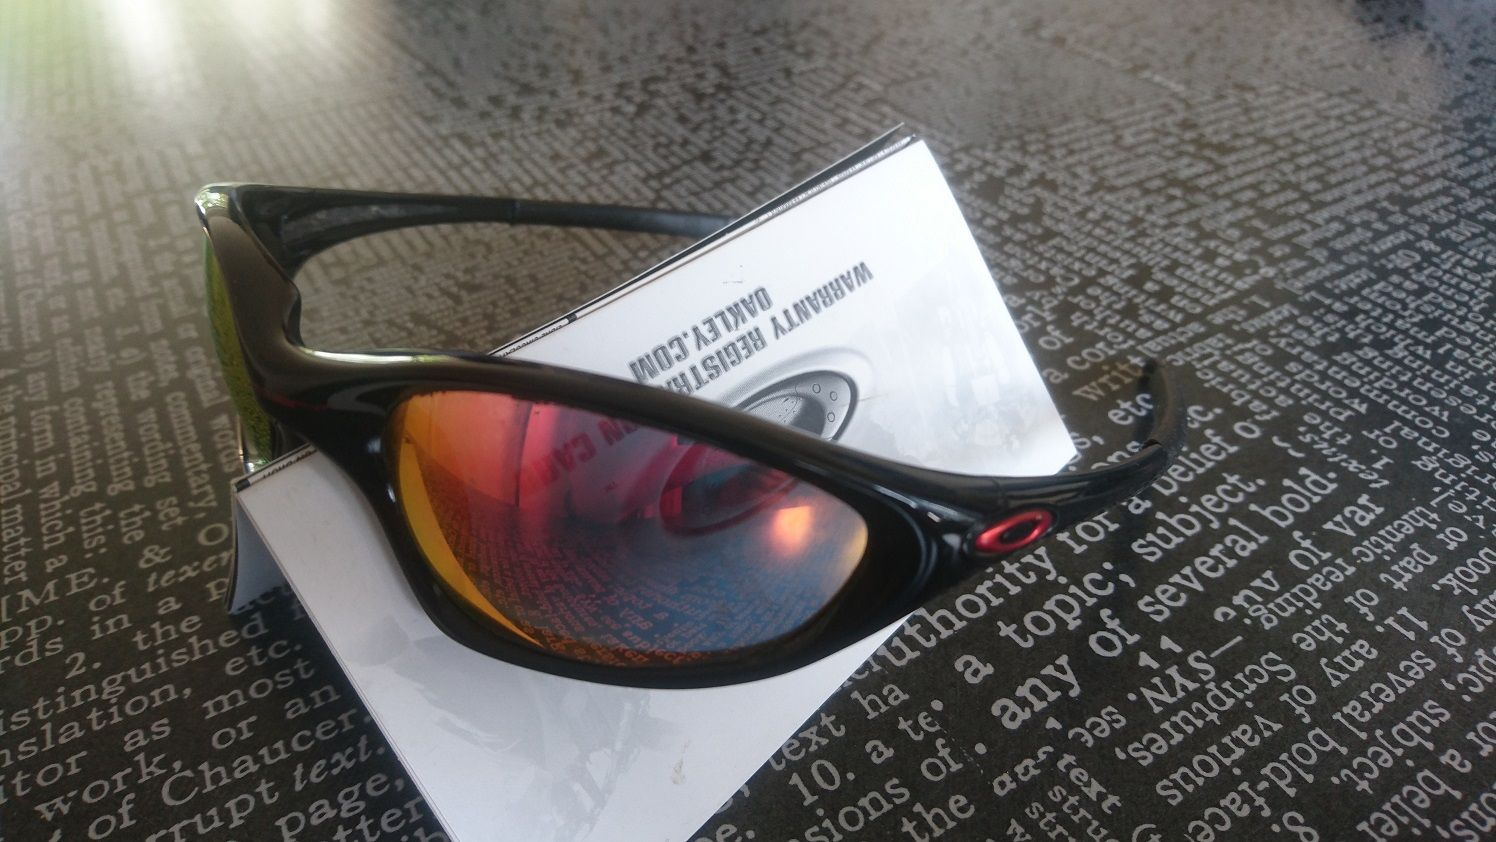 Giveaway: A Twenty for your story | Oakley Forum